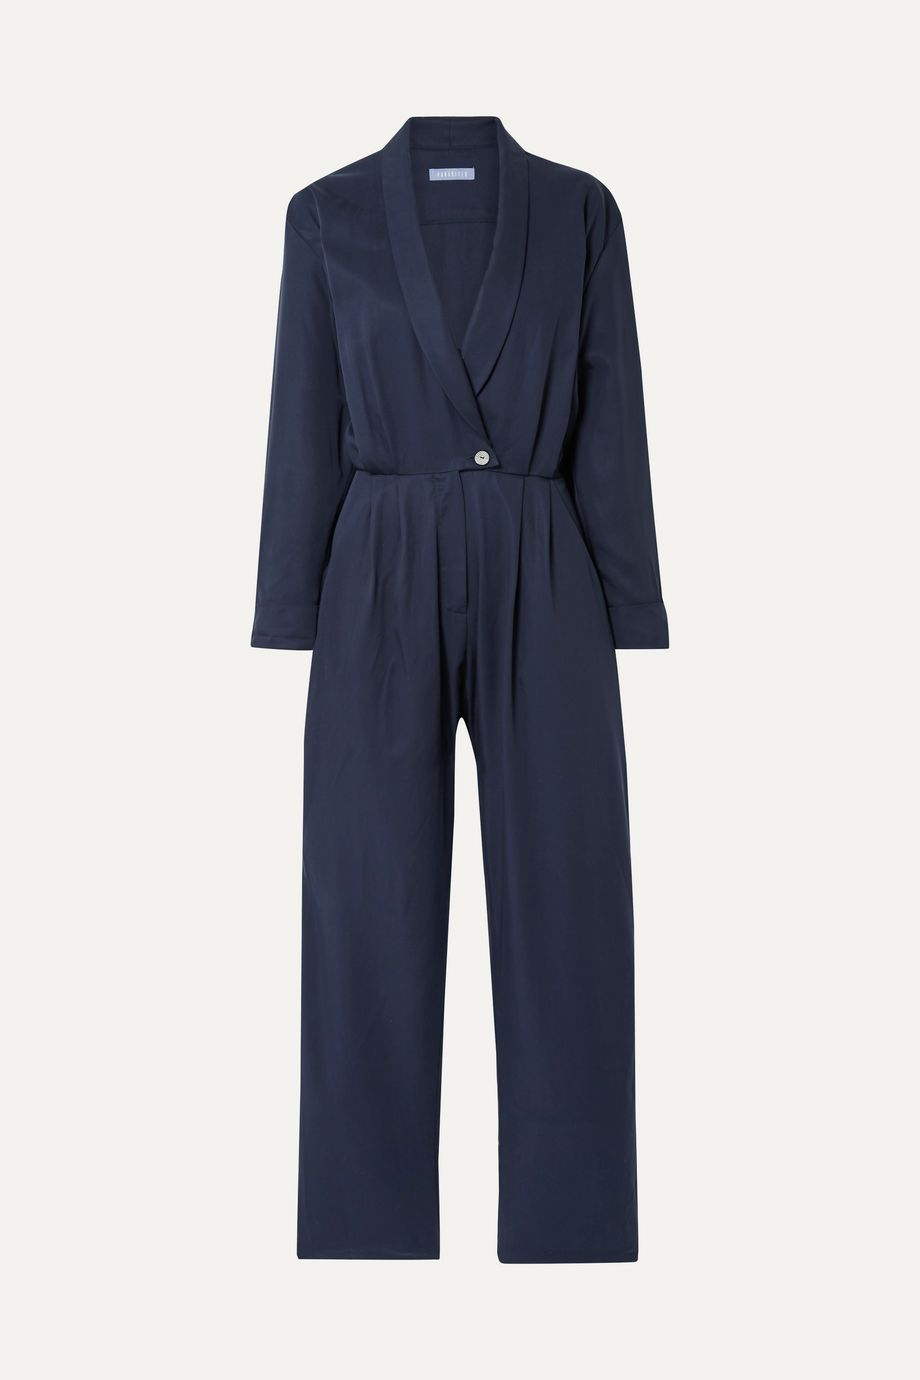 Paradised Jane wrap-effect Tencel jumpsuit